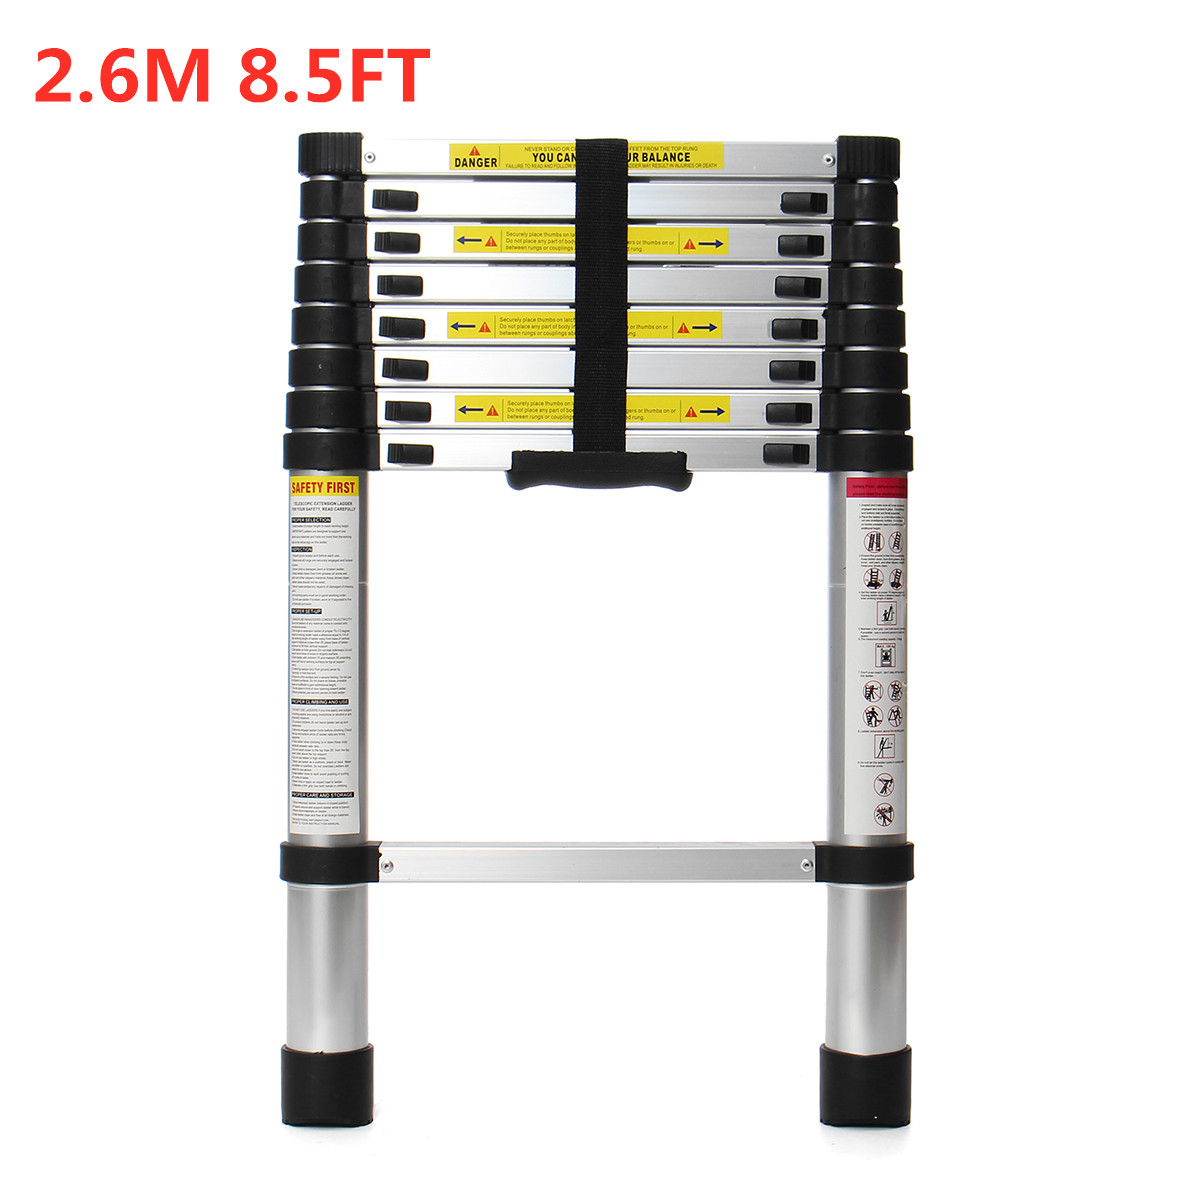 8.5Ft 2.6m Aluminium Telescopic Ladder Multi-Purpose Telescoping Ladders Folding Single Extension Step With Locking Tool